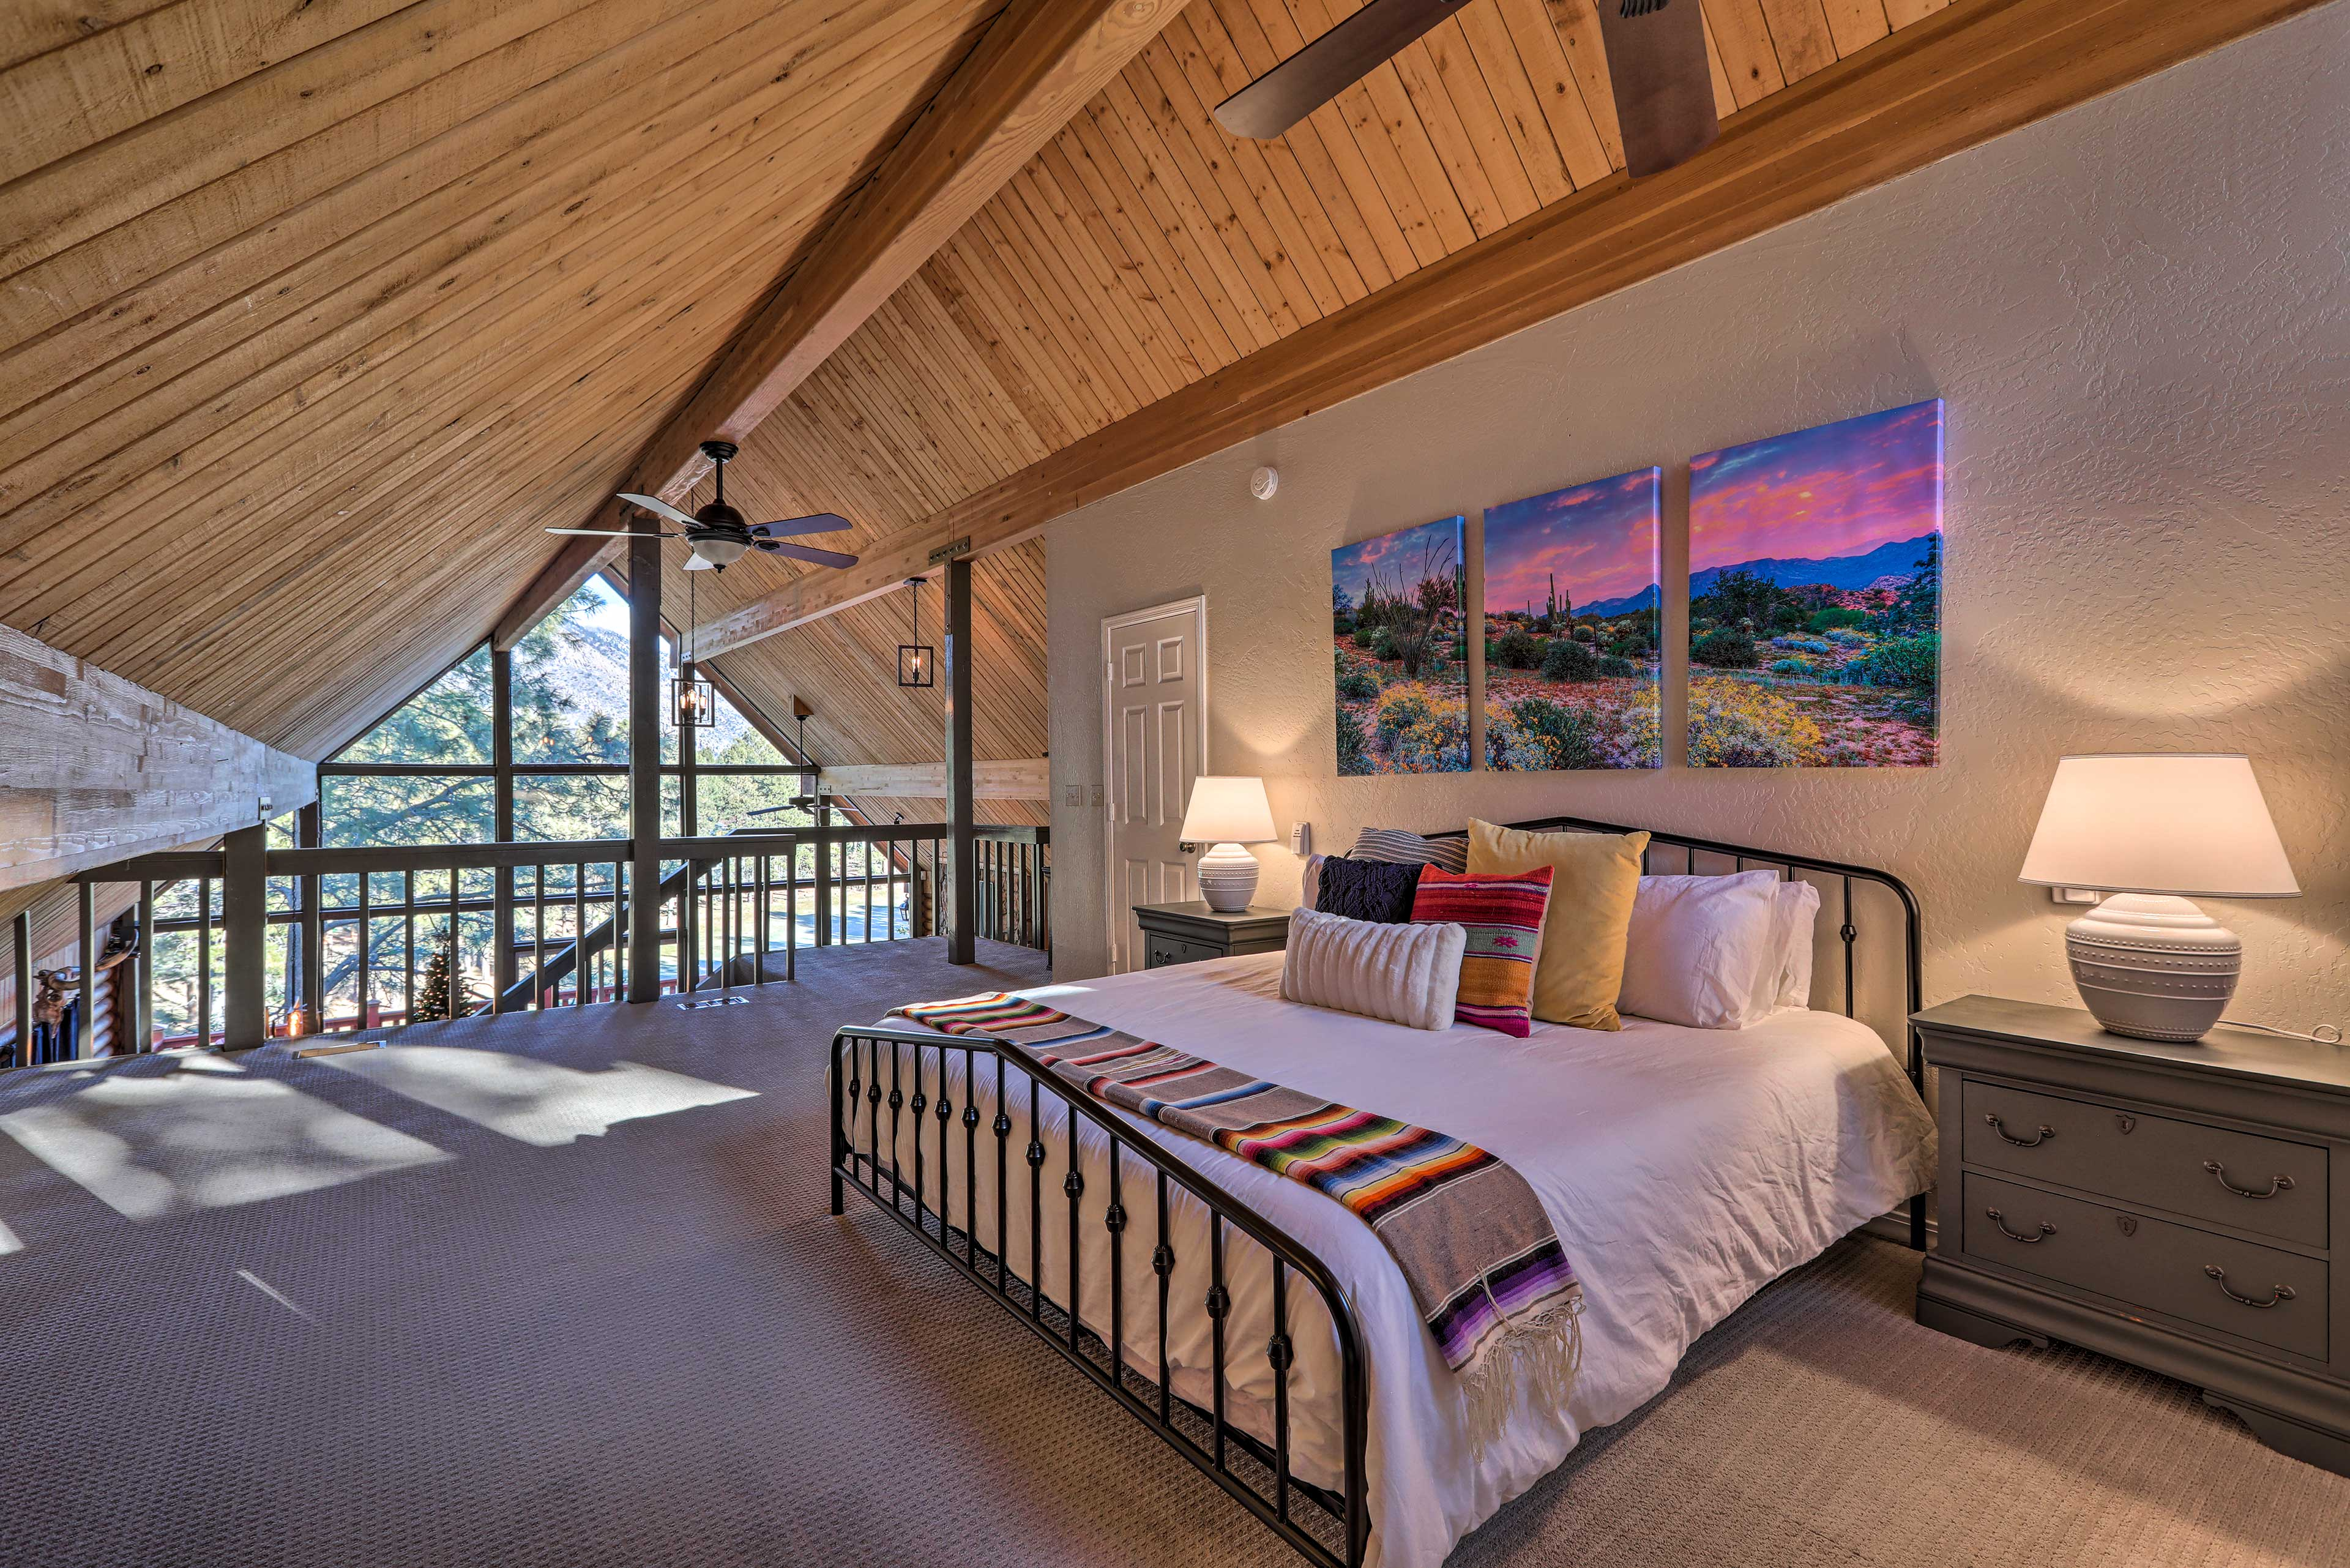 The master bedroom is located upstairs in the loft.